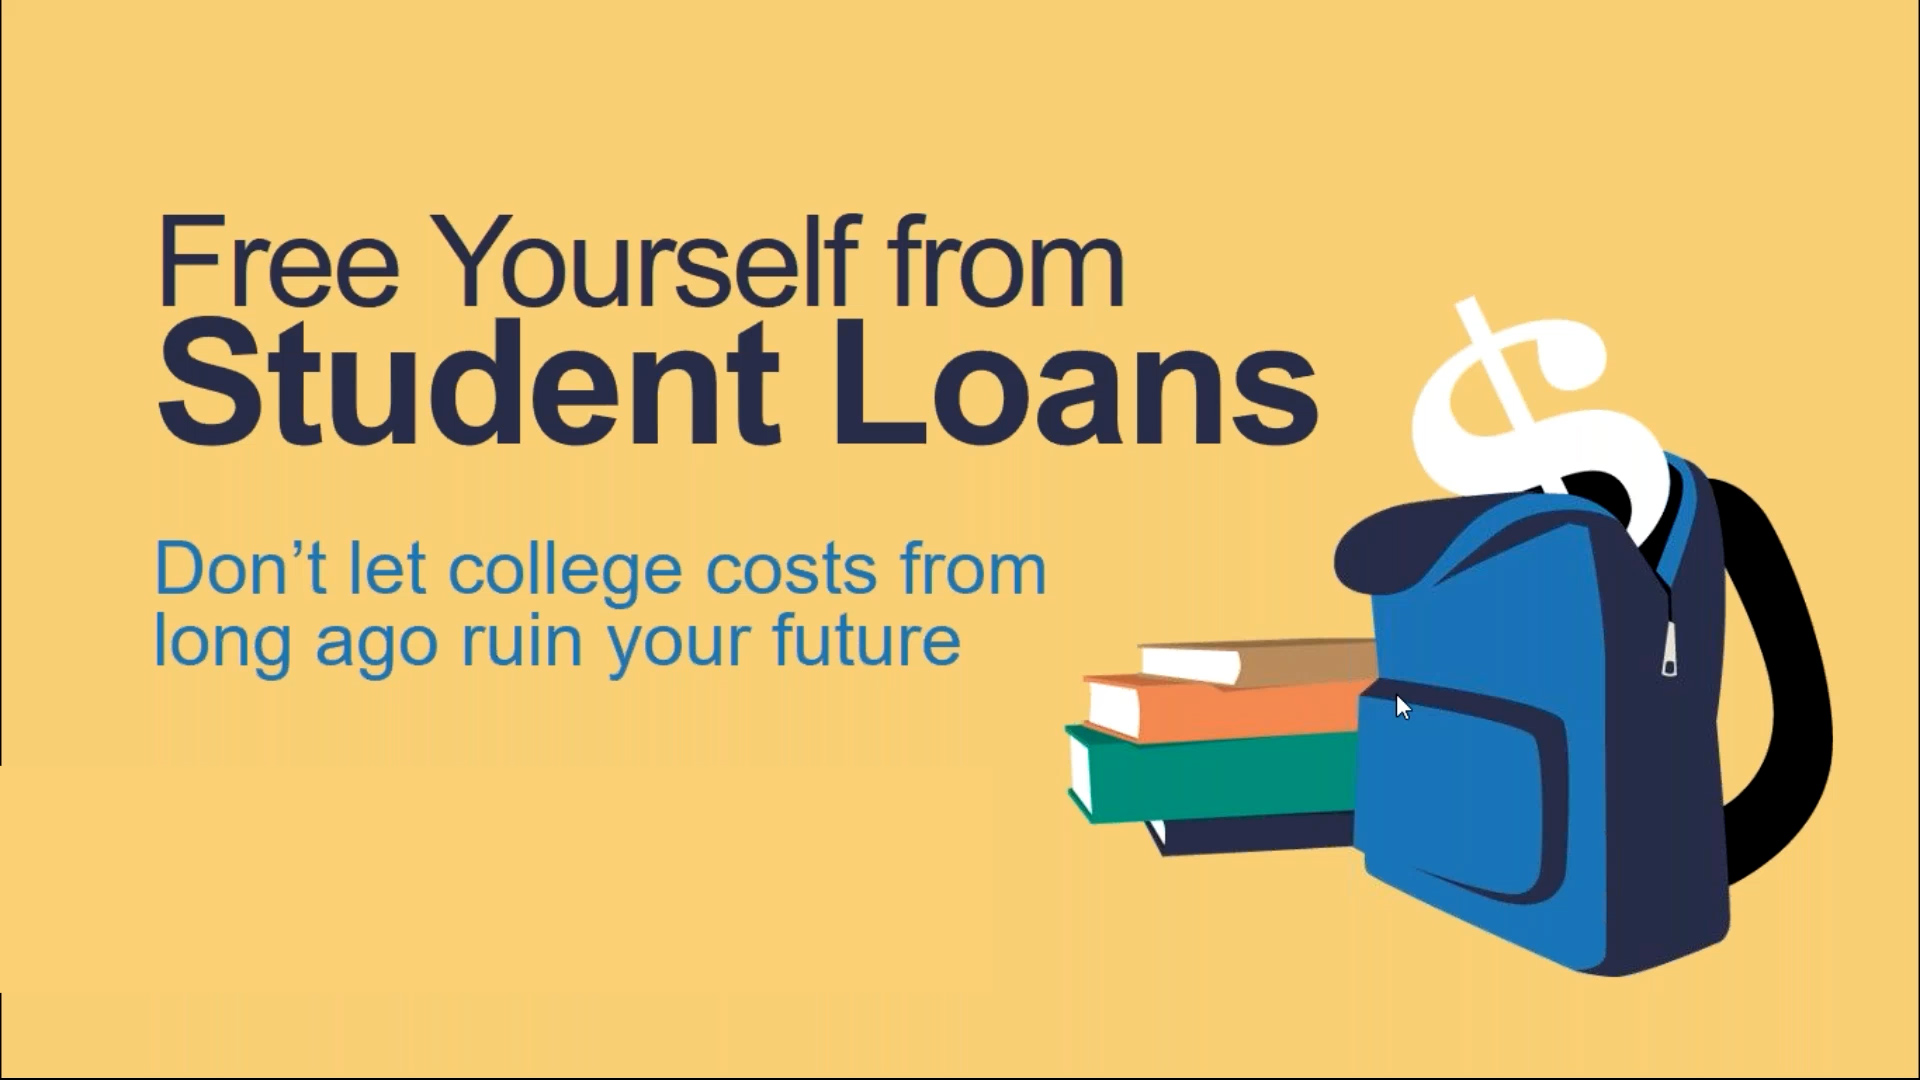 Free Yourself from Student Loans Debt. Don't let college costs from long ago ruin your future.